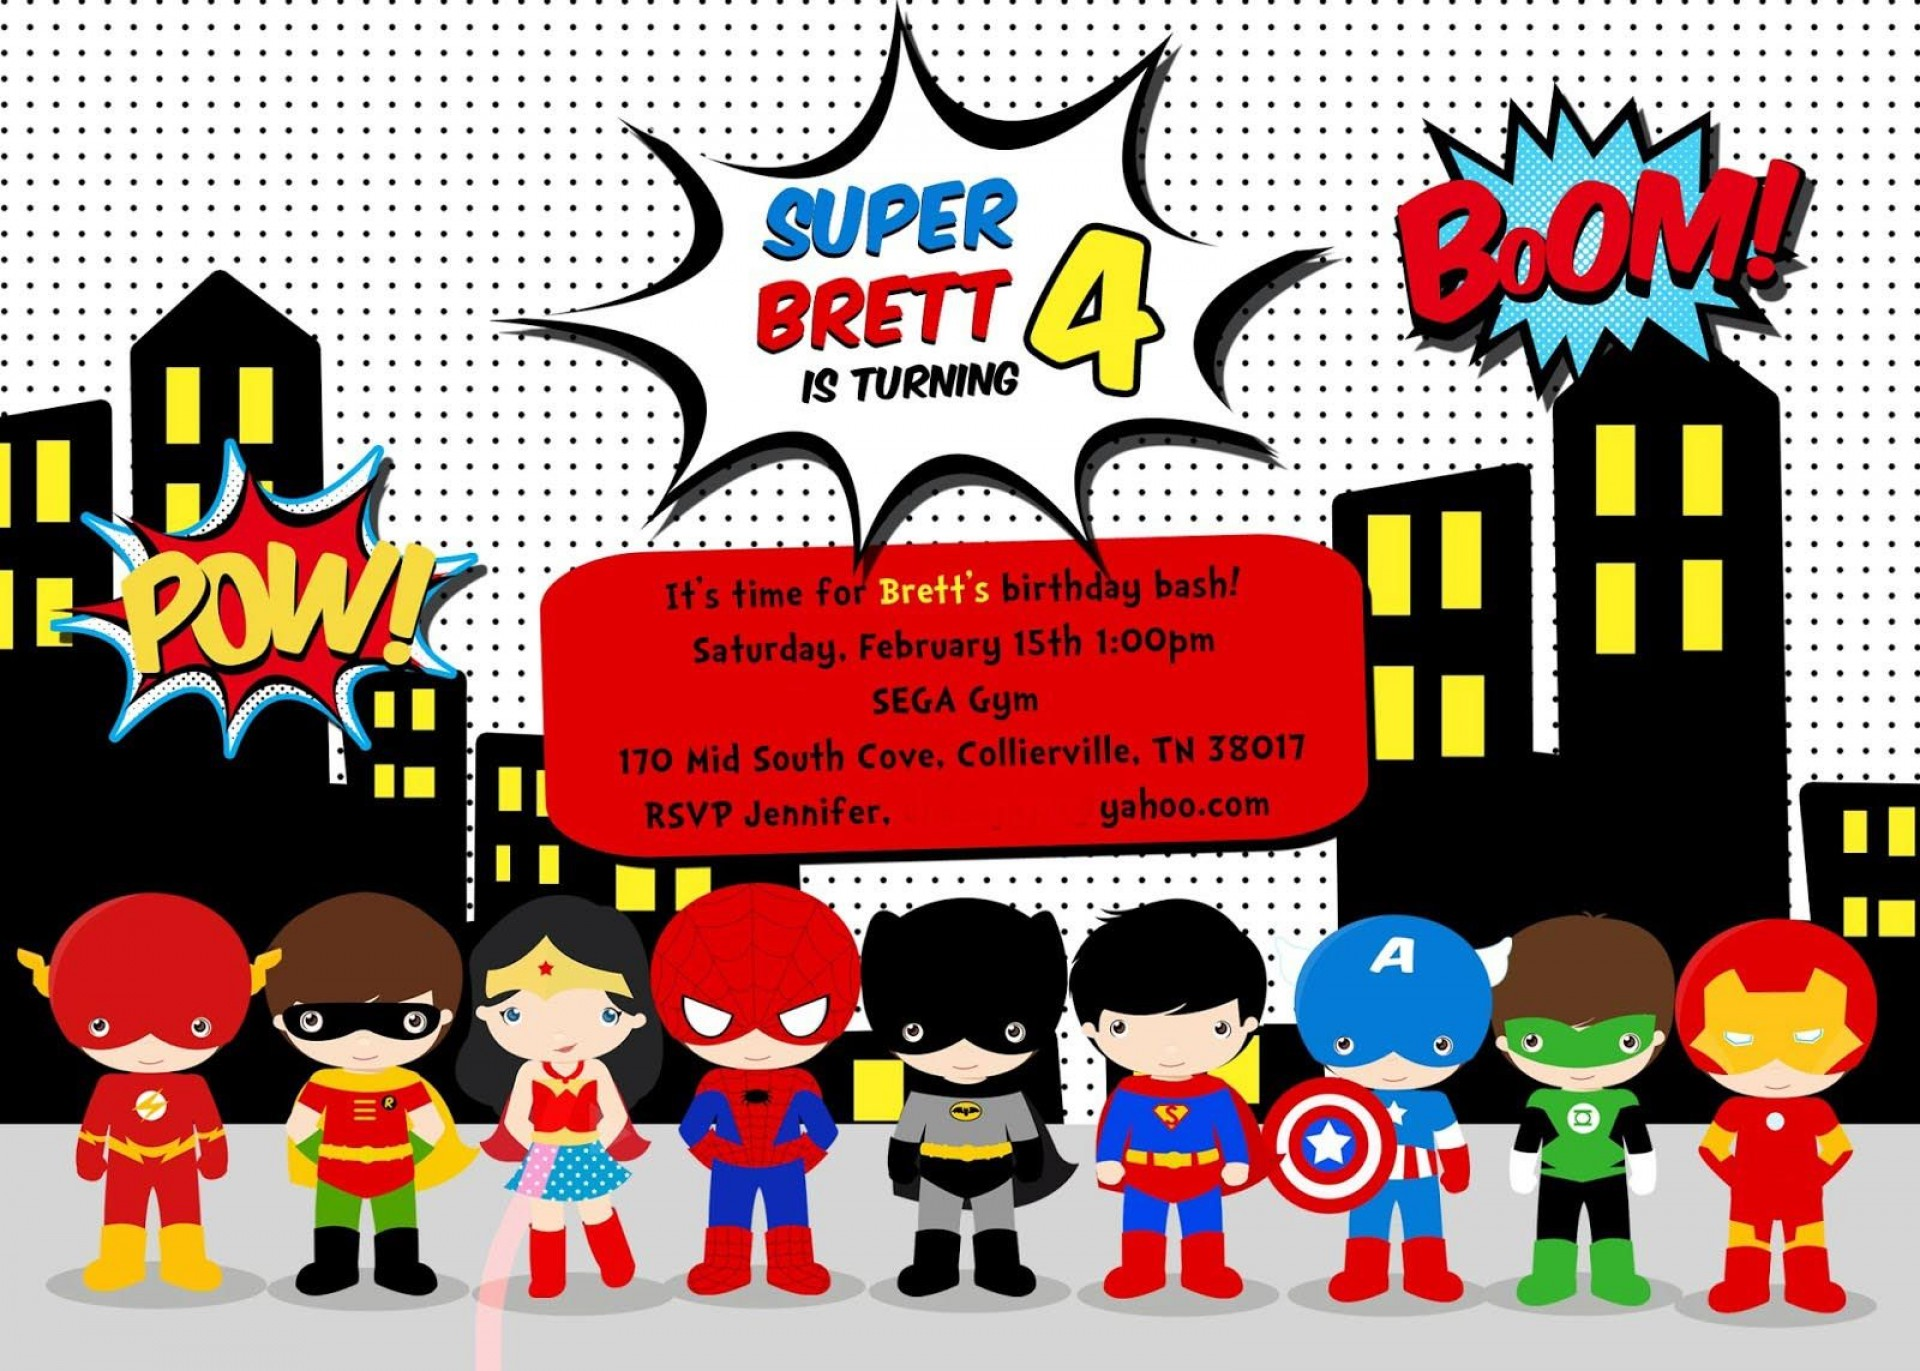 004 Fascinating Editable Superhero Invitation Template Free Inspiration 1920